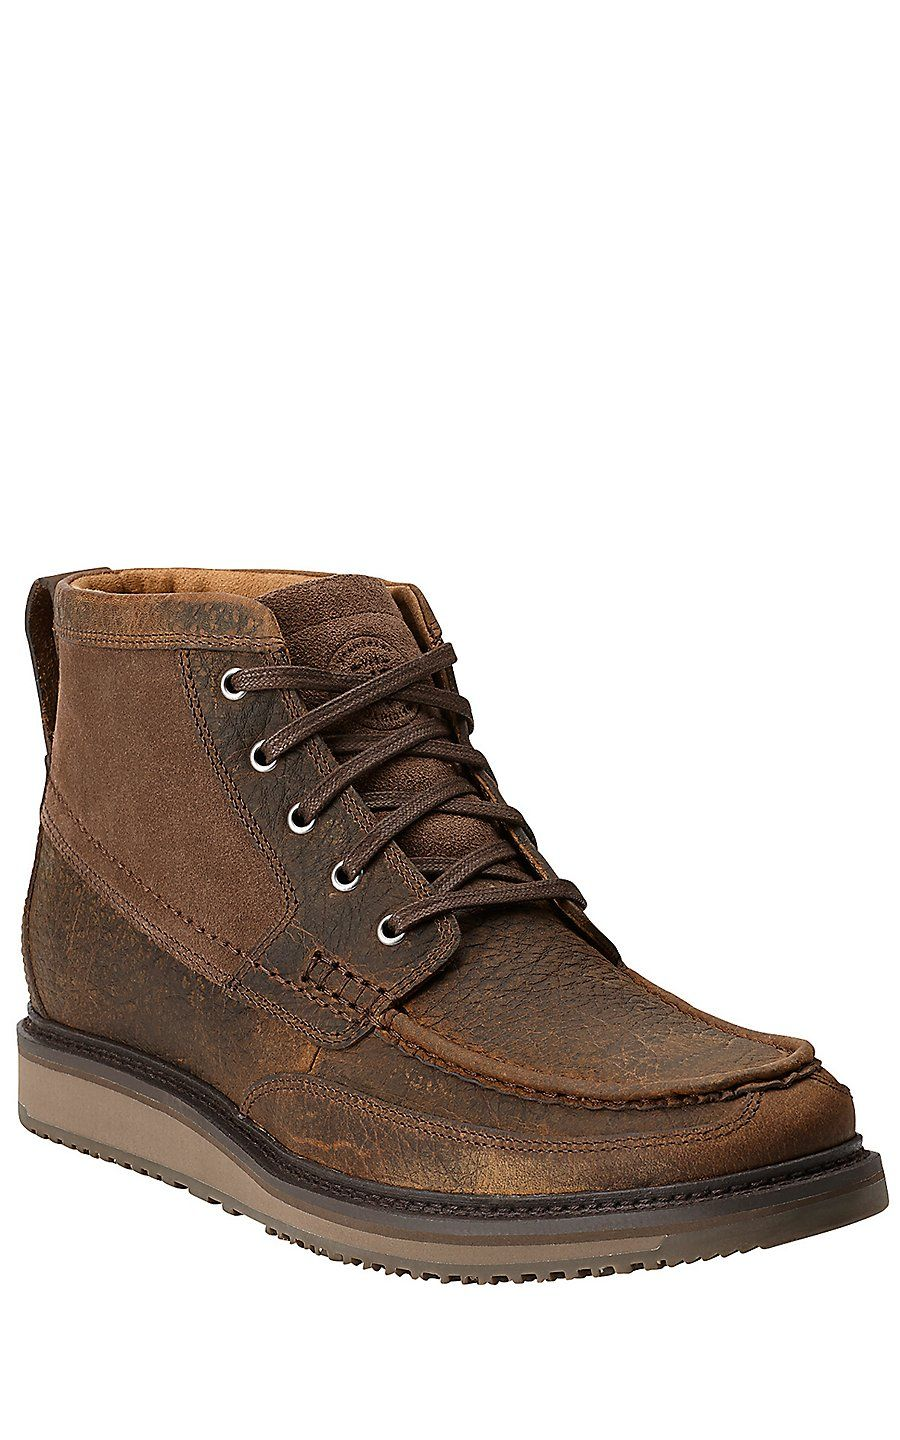 Ariat Lookout(Men's) -Earth/Stone Leather/Suede Buy Cheap Free Shipping Cheap Clearance 9YLMO